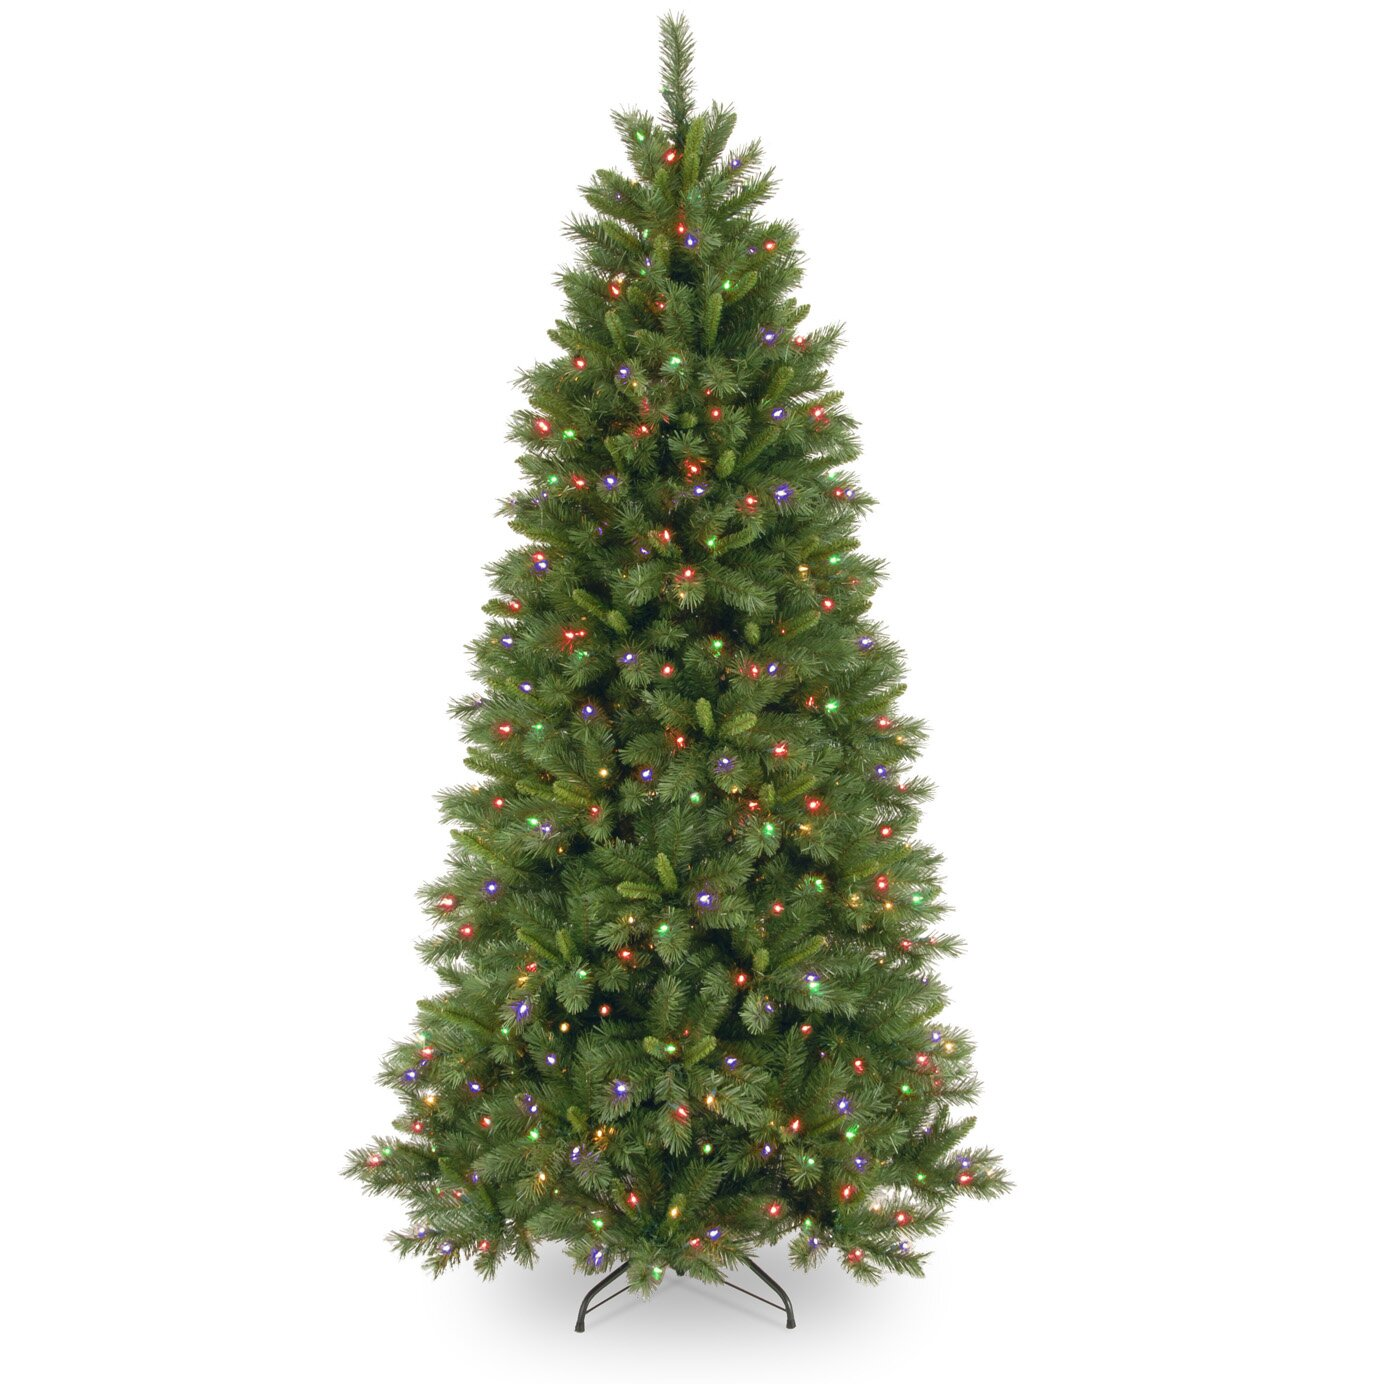 Slim white christmas tree with lights - Lehigh Valley Pine 7 5 Green Slim Hinged Artificial Christmas Tree With 450 Colored Clear